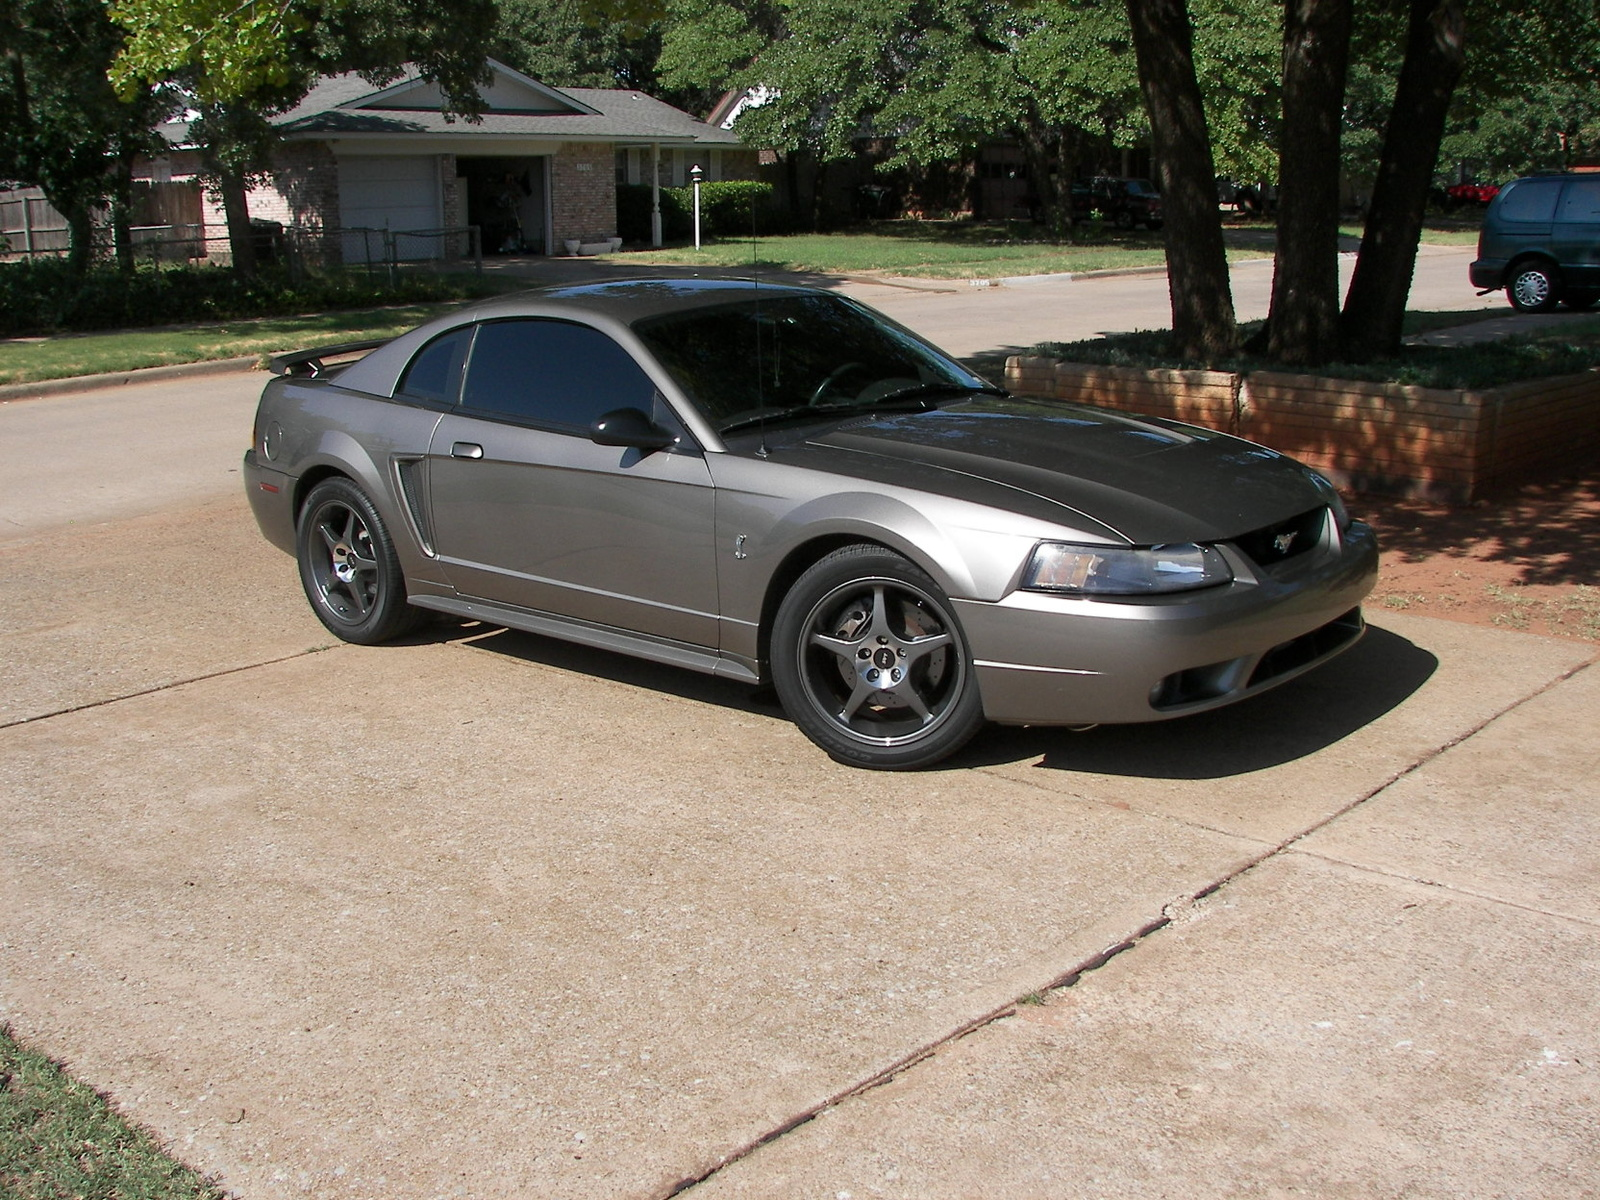 2001 ford mustang svt cobra exterior pictures cargurus. Black Bedroom Furniture Sets. Home Design Ideas